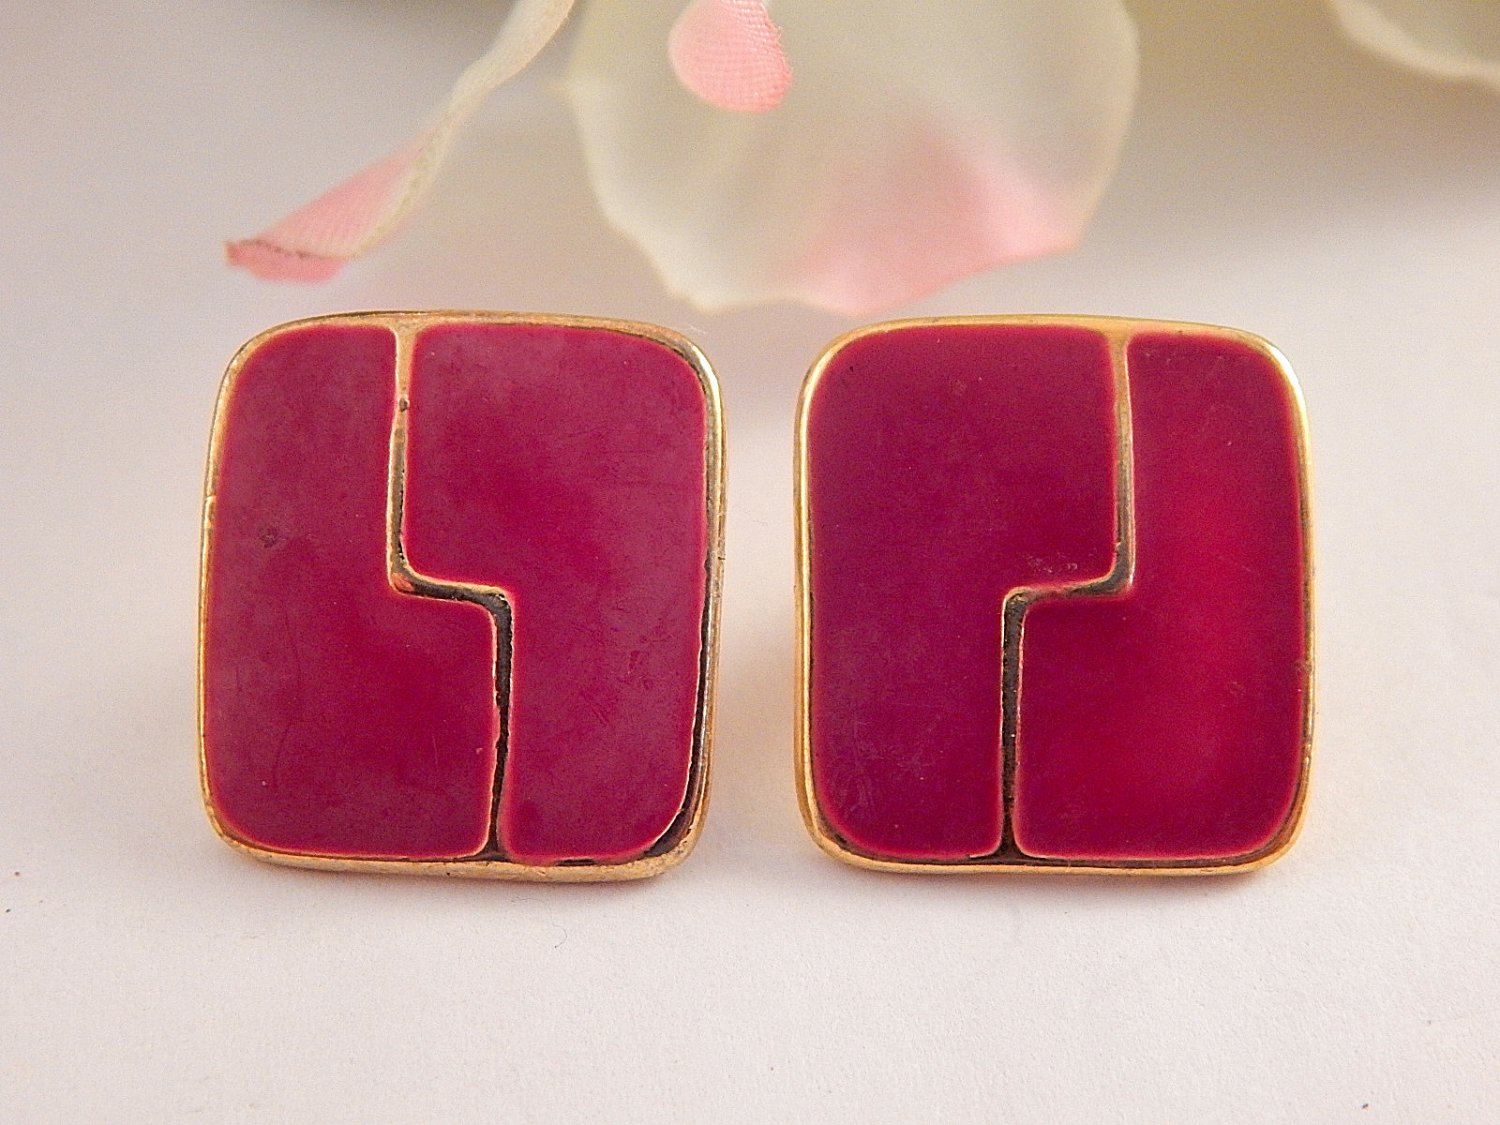 Pink Enamel Earrings Geometric Mod Vintage 1970's Gold Metal Jewelry for Pierced Ears